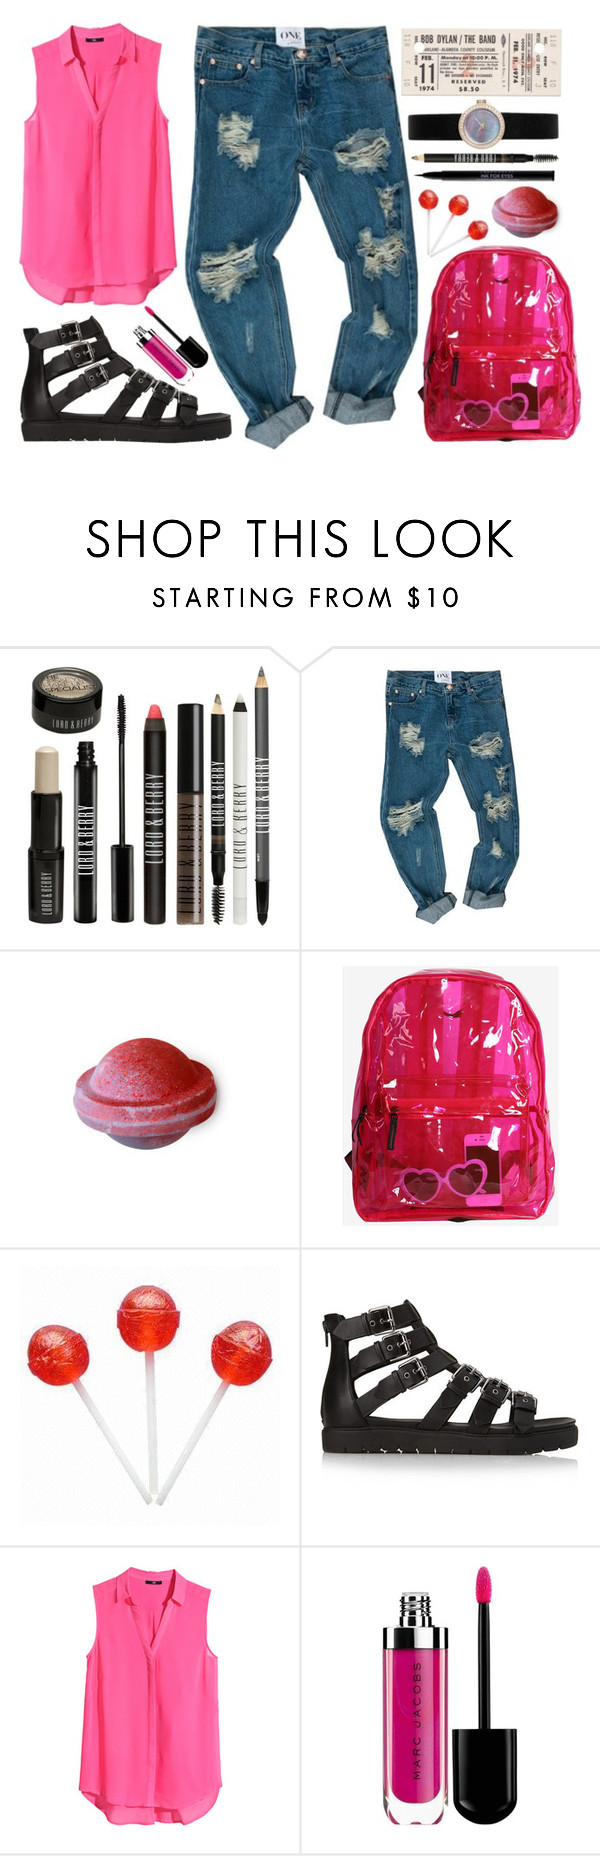 """""""Ciara"""" by allfashioon ❤ liked on Polyvore featuring Lord & Berry, OneTeaspoon, Forever 21, H&M, Urban Decay, topsets, Pink, lovely, WhatToWear and polyvoreeditorial"""